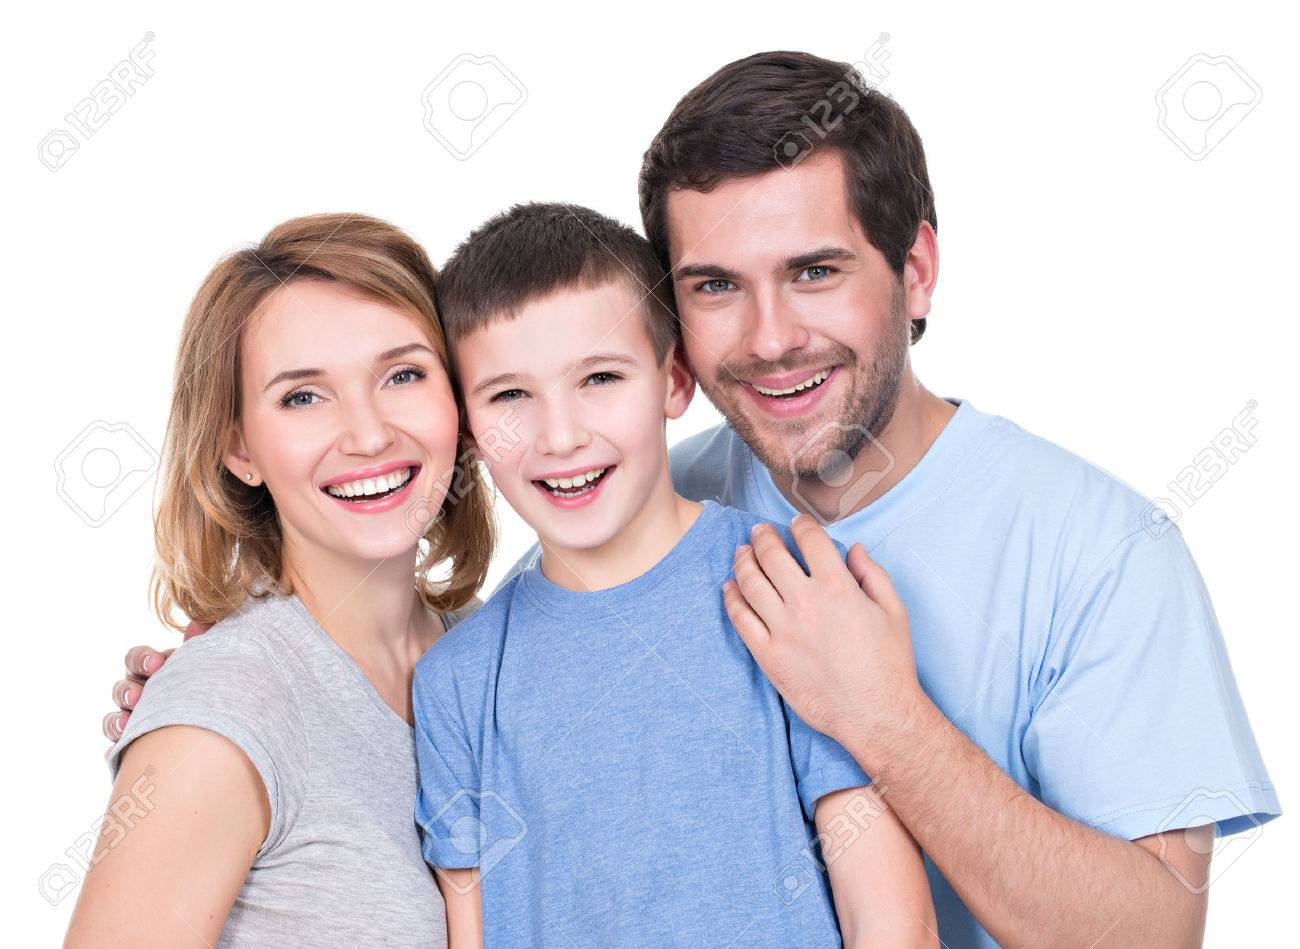 Portrait of the happy parents with son looking at camera - isolated on white background - 53555524